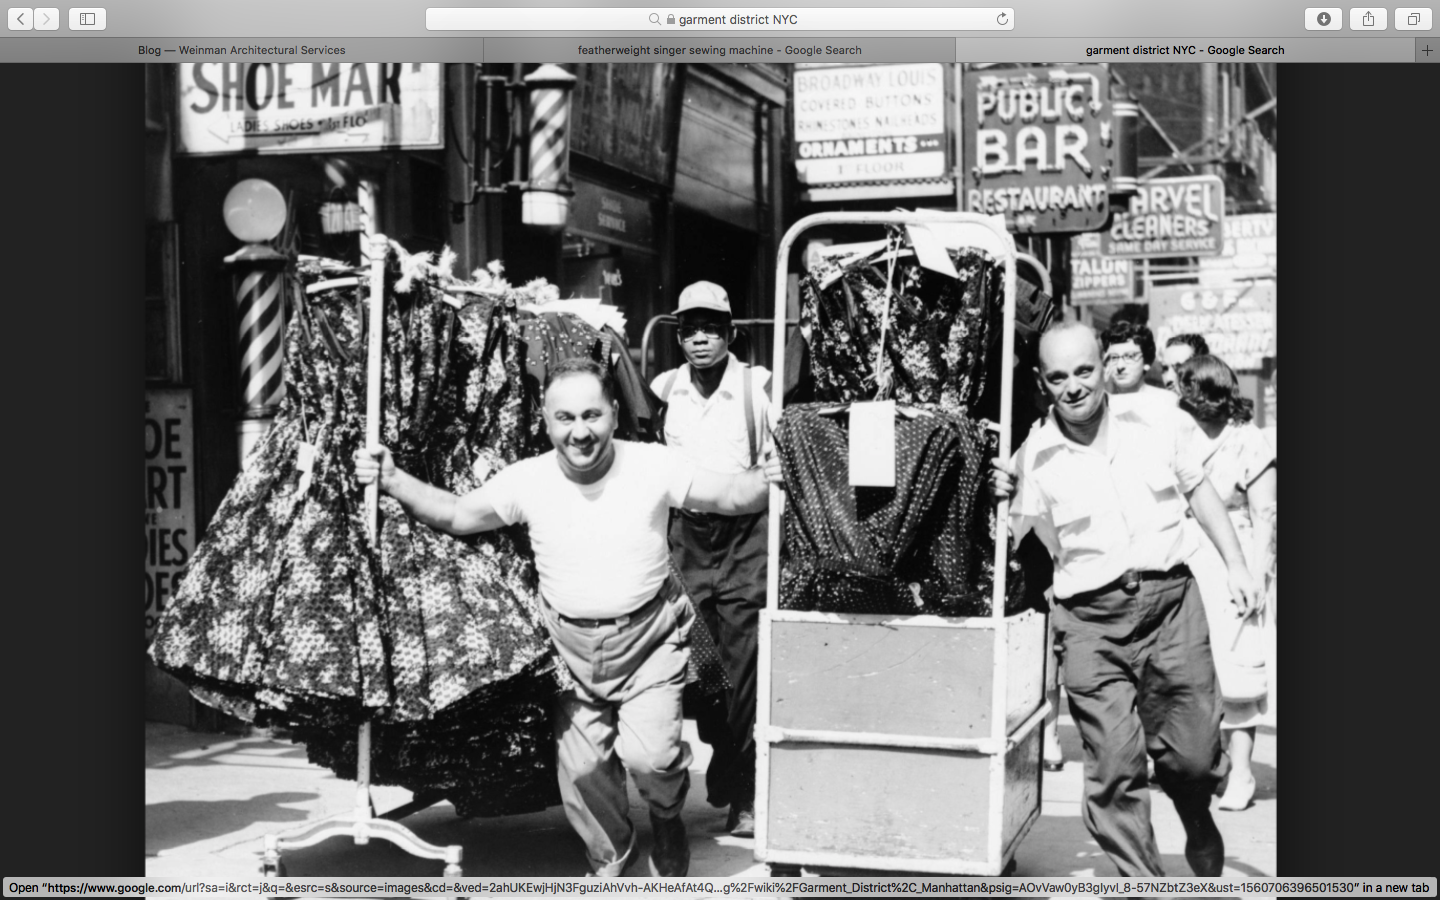 This is old world Garment district probably when my machine was used!